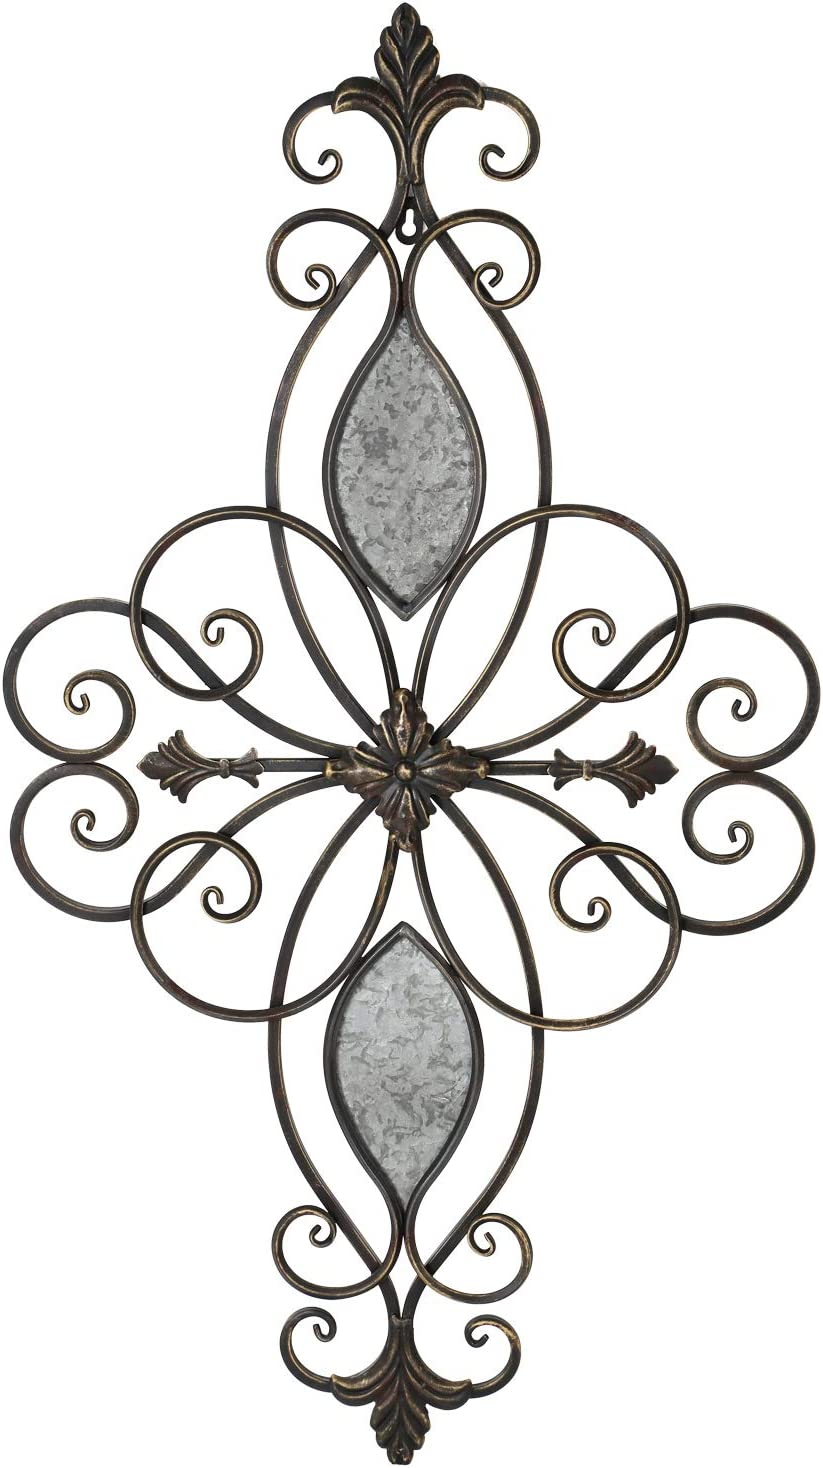 """Adeco Flower Urban Rustic Starburst/Fleur De Lis Design Decorative Scrolled Metal Decor for Nature Home Art Decoration & Kitchen Holiday Wall Decorations, Christmas Wall Art Gifts, 19.25""""x32.25"""""""